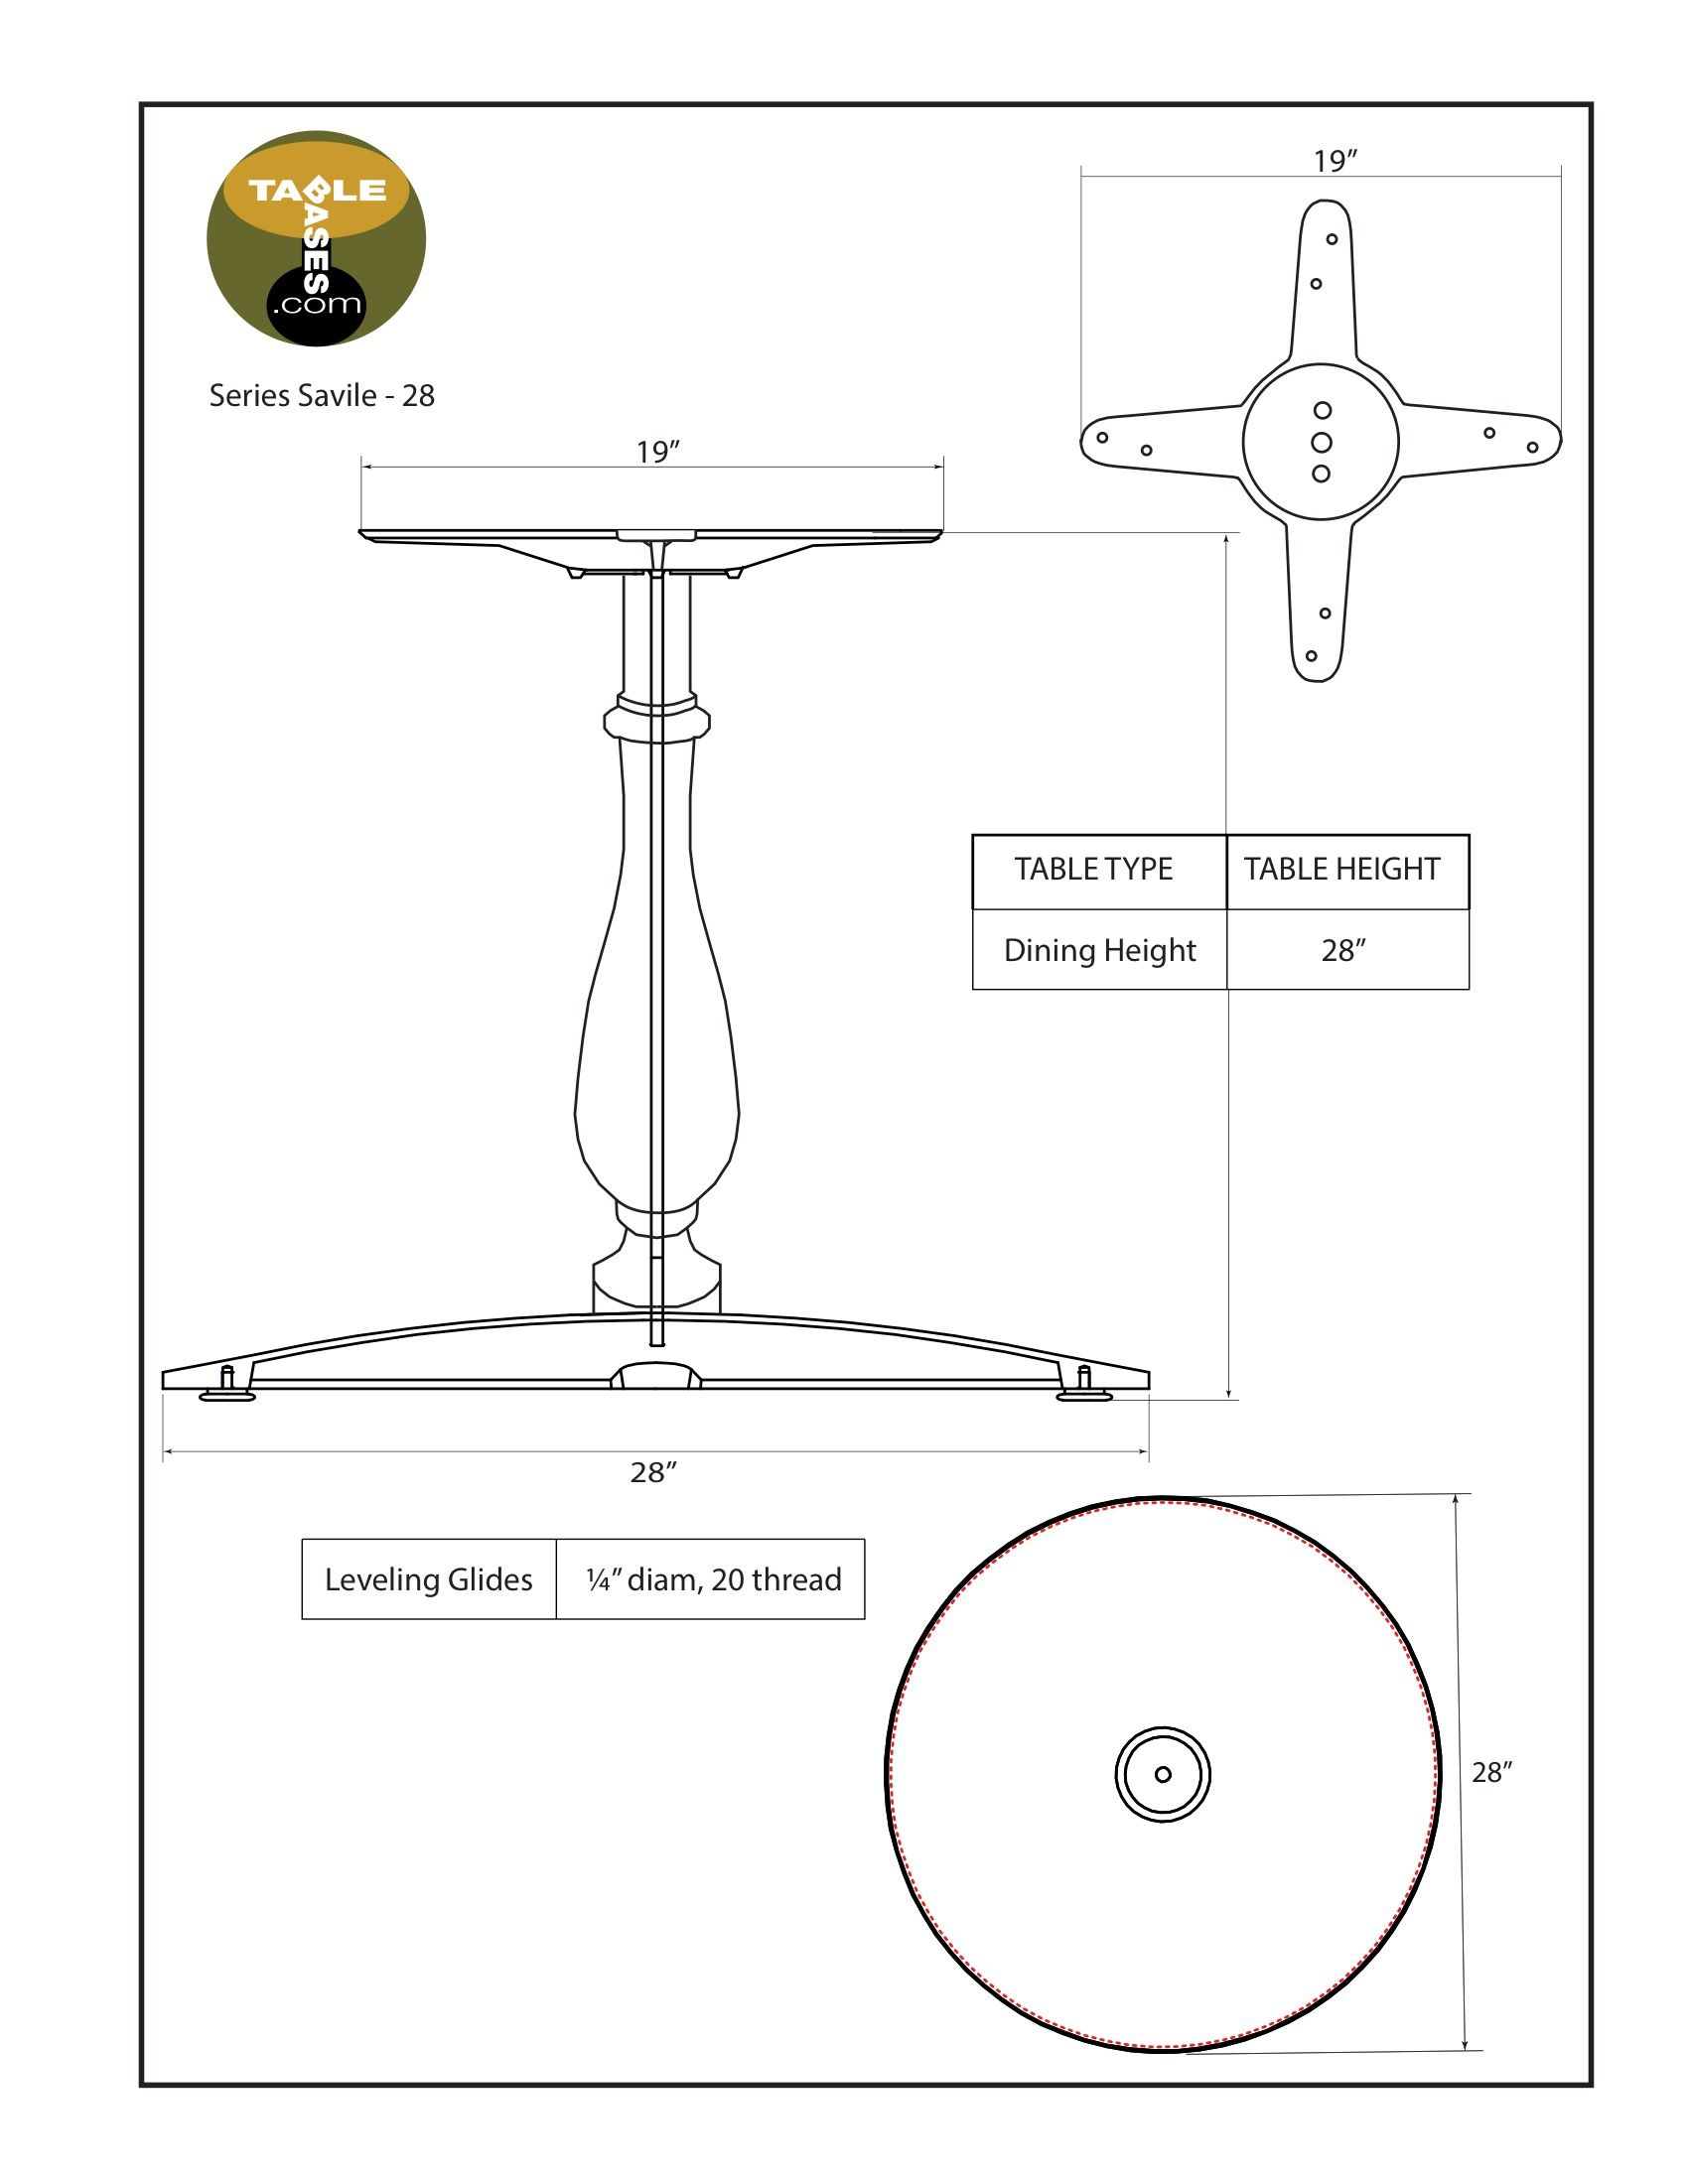 Savile-28 Specifications